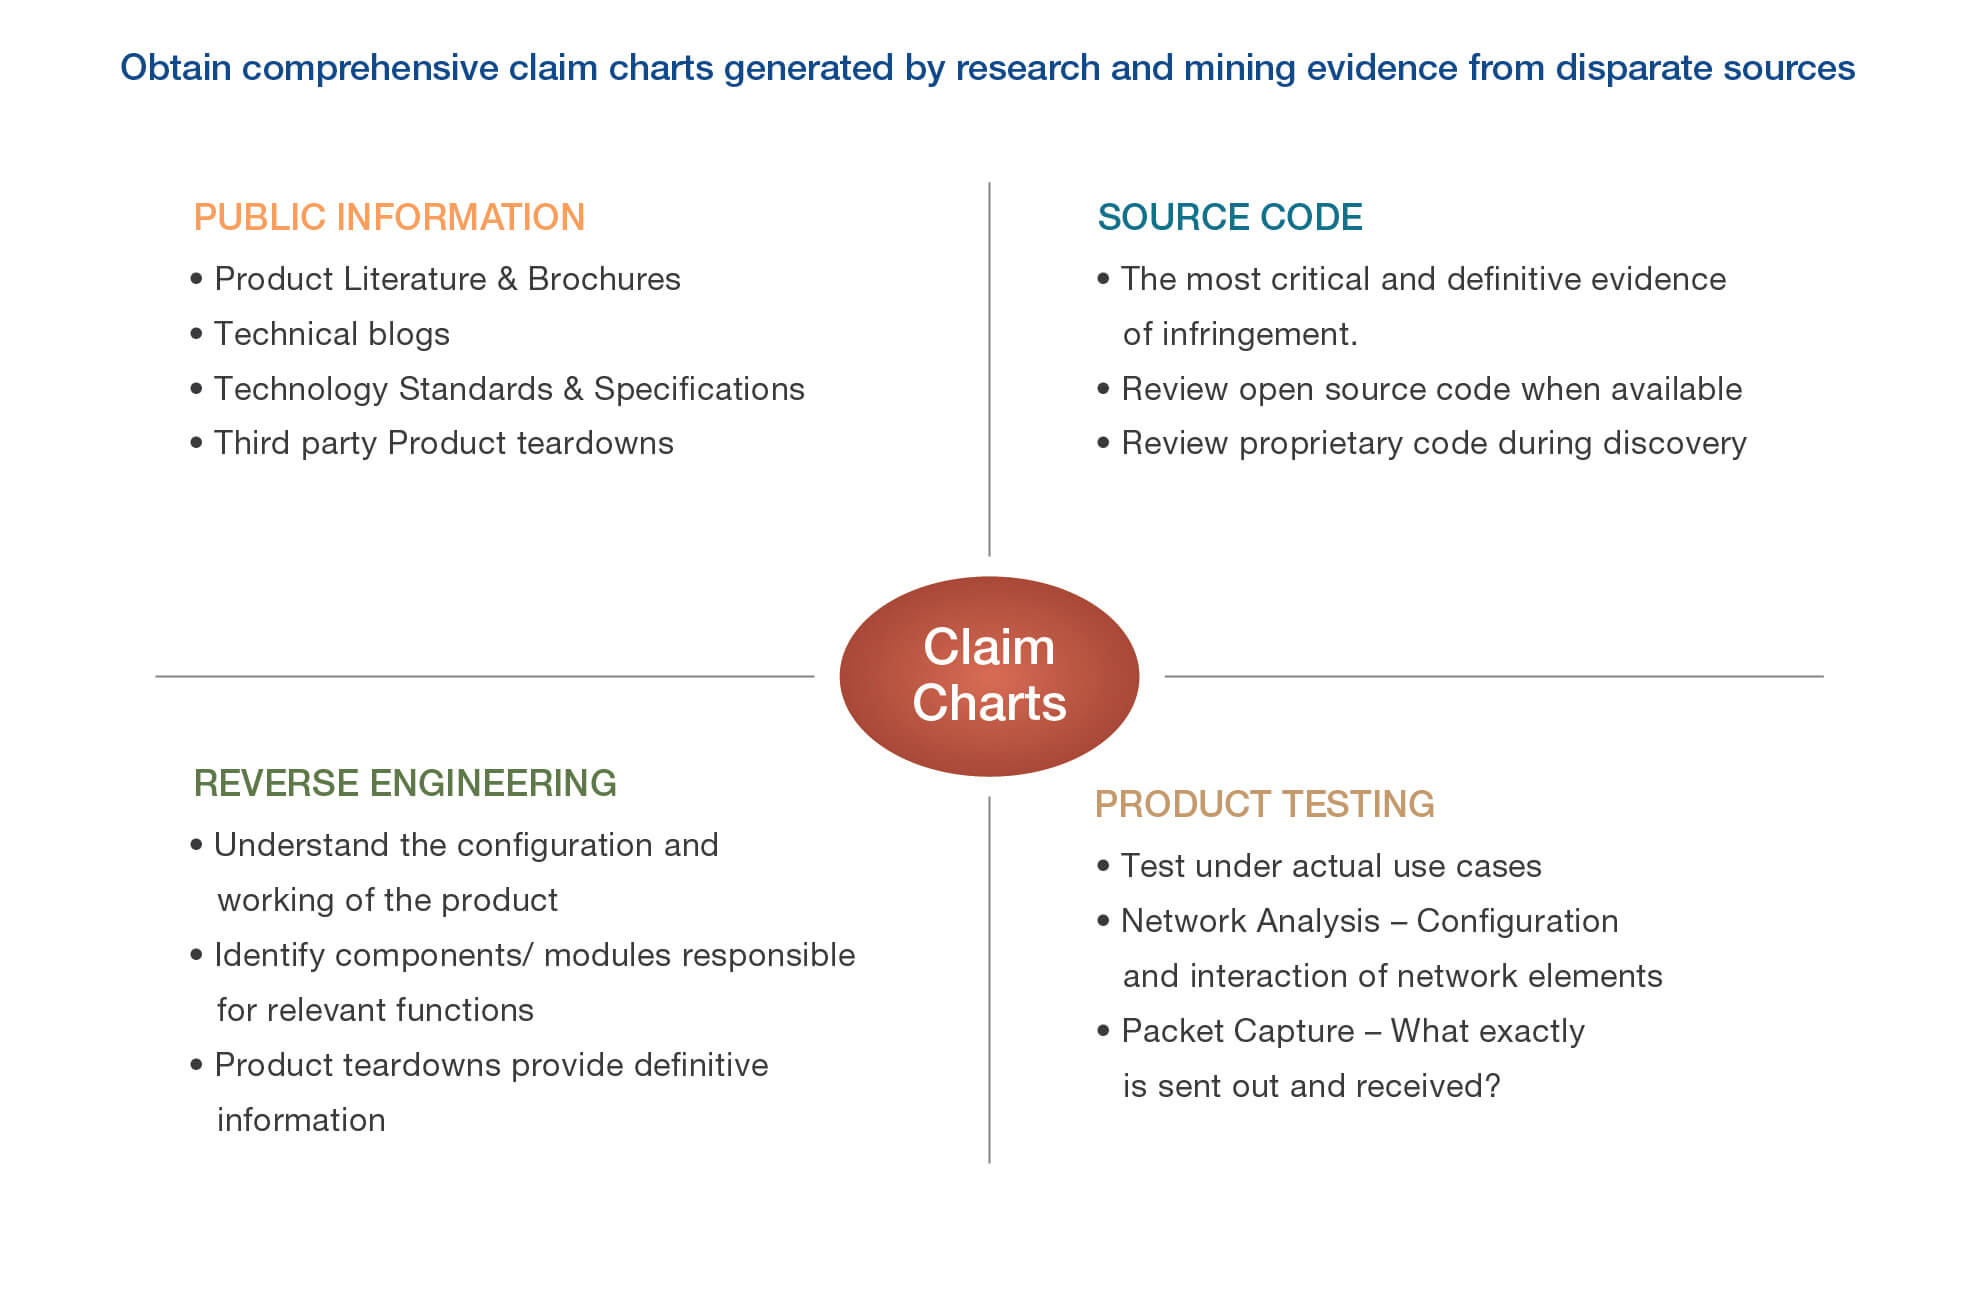 Comprehensive Claim Charts from disparate sources of evidence